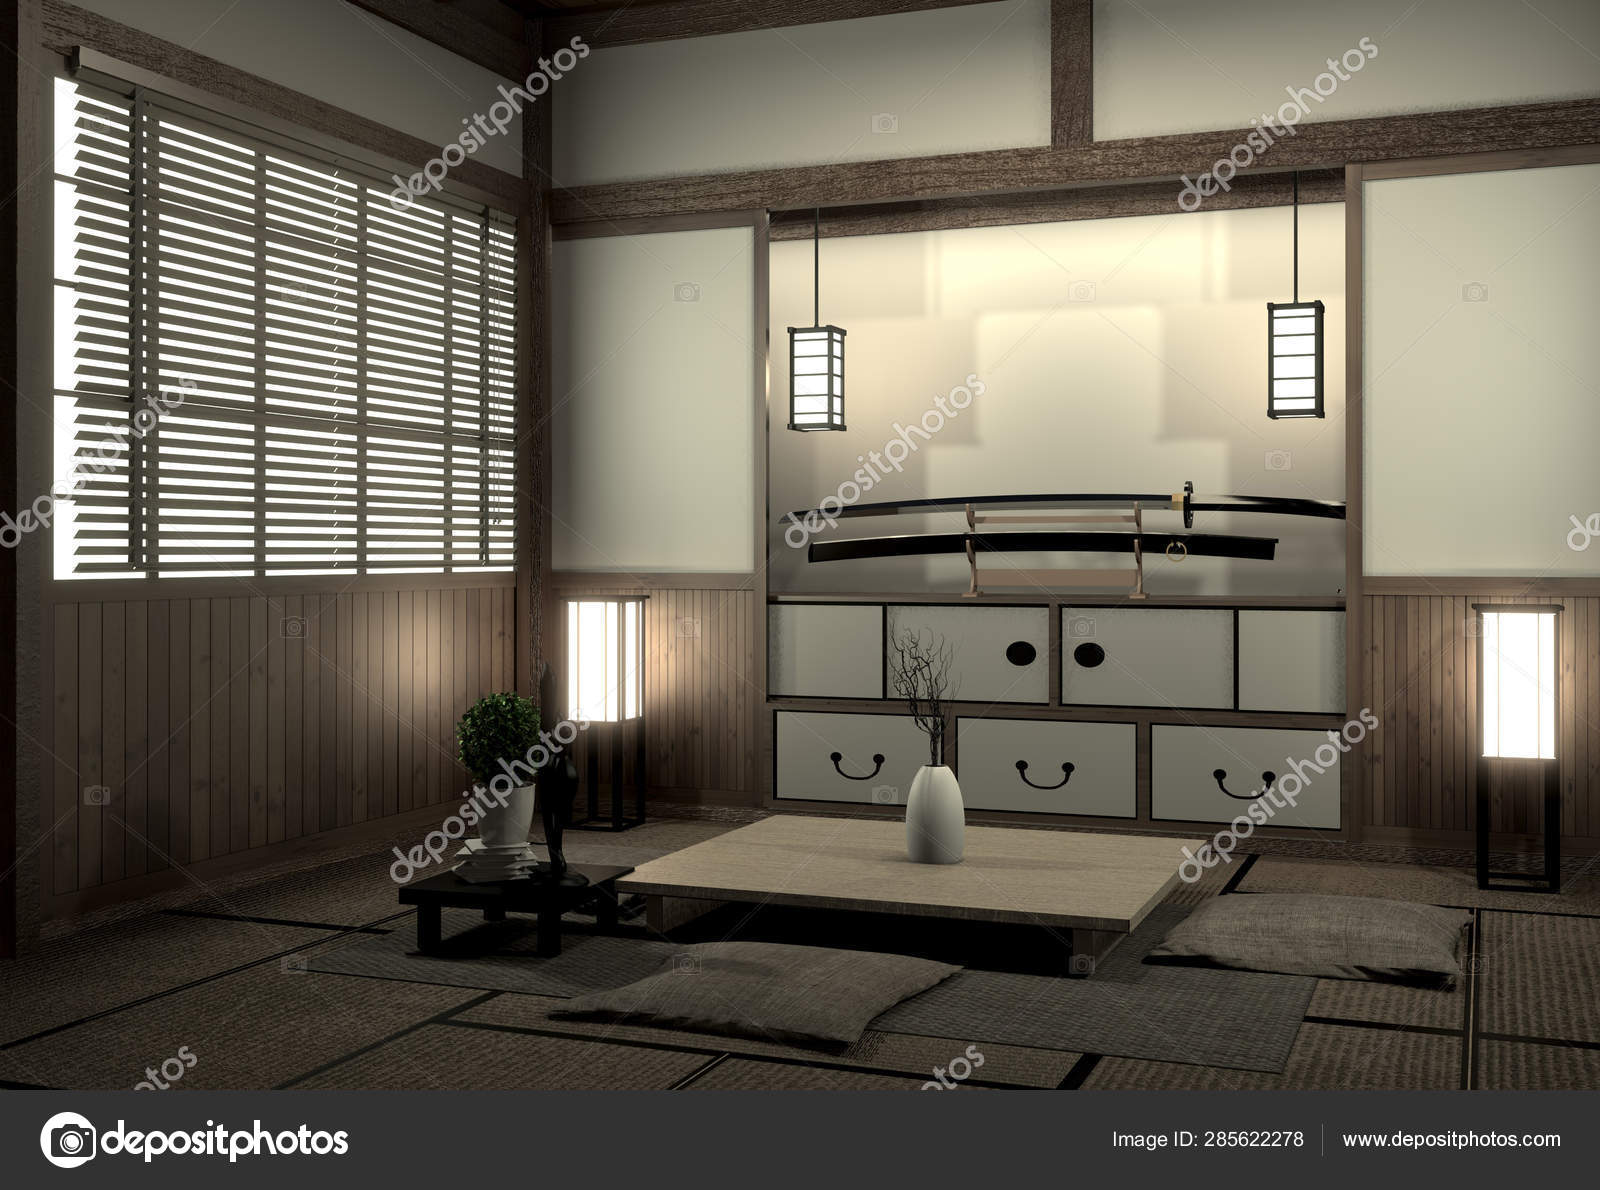 Living Room Interior Design With Cabinet In Shelf Wall Design An Stock Photo C Minny0012011 Gmail Com 285622278